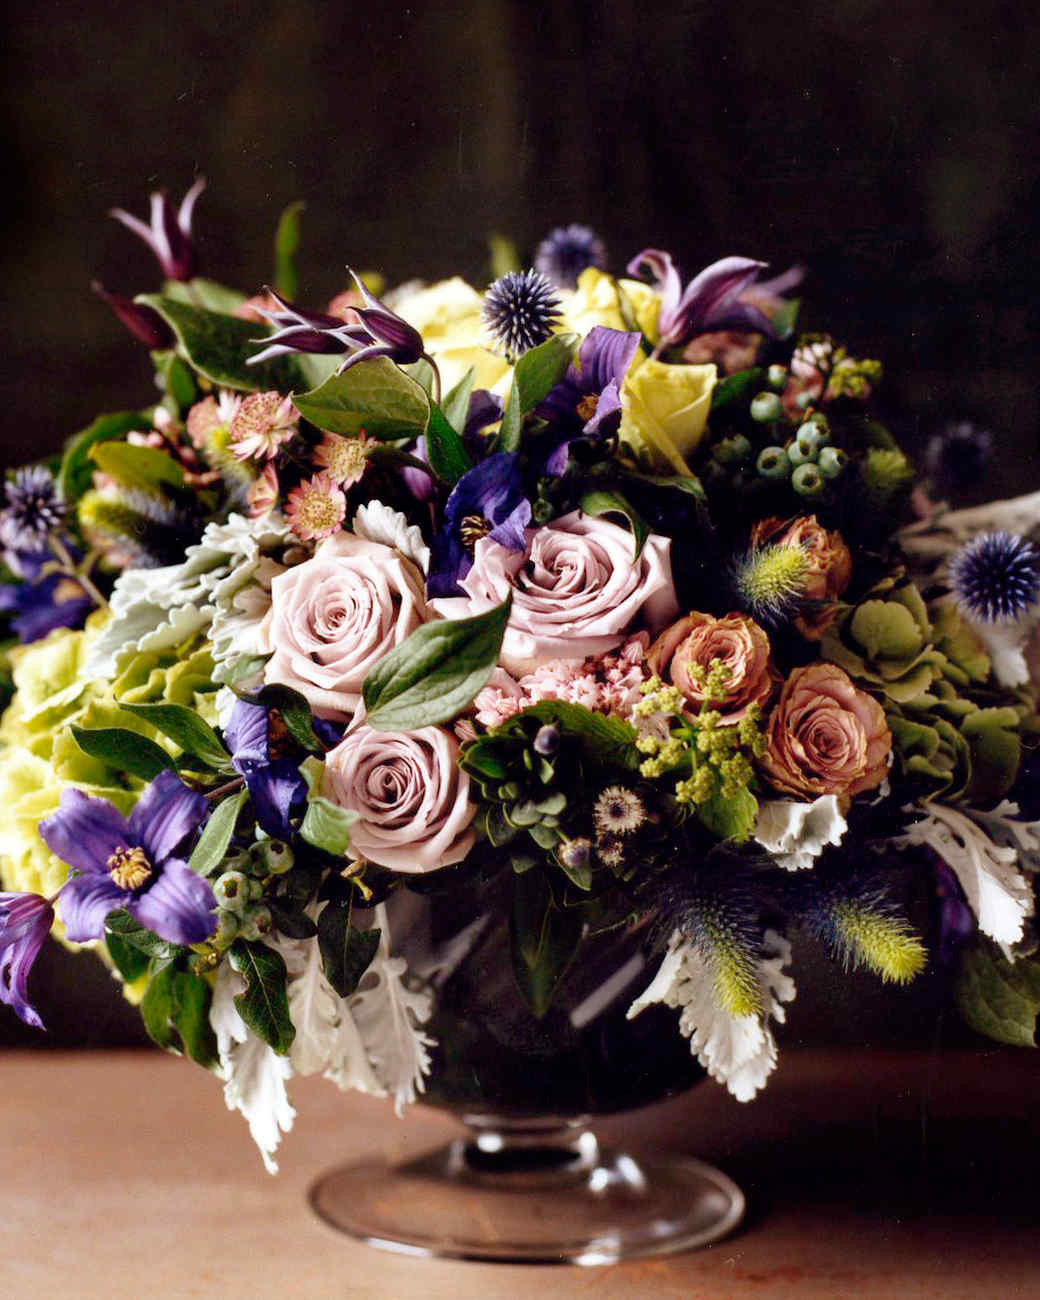 Easy Centerpieces Martha Stewart : flower arranging la104174 015vert from www.marthastewart.com size 1040 x 1300 jpeg 124kB